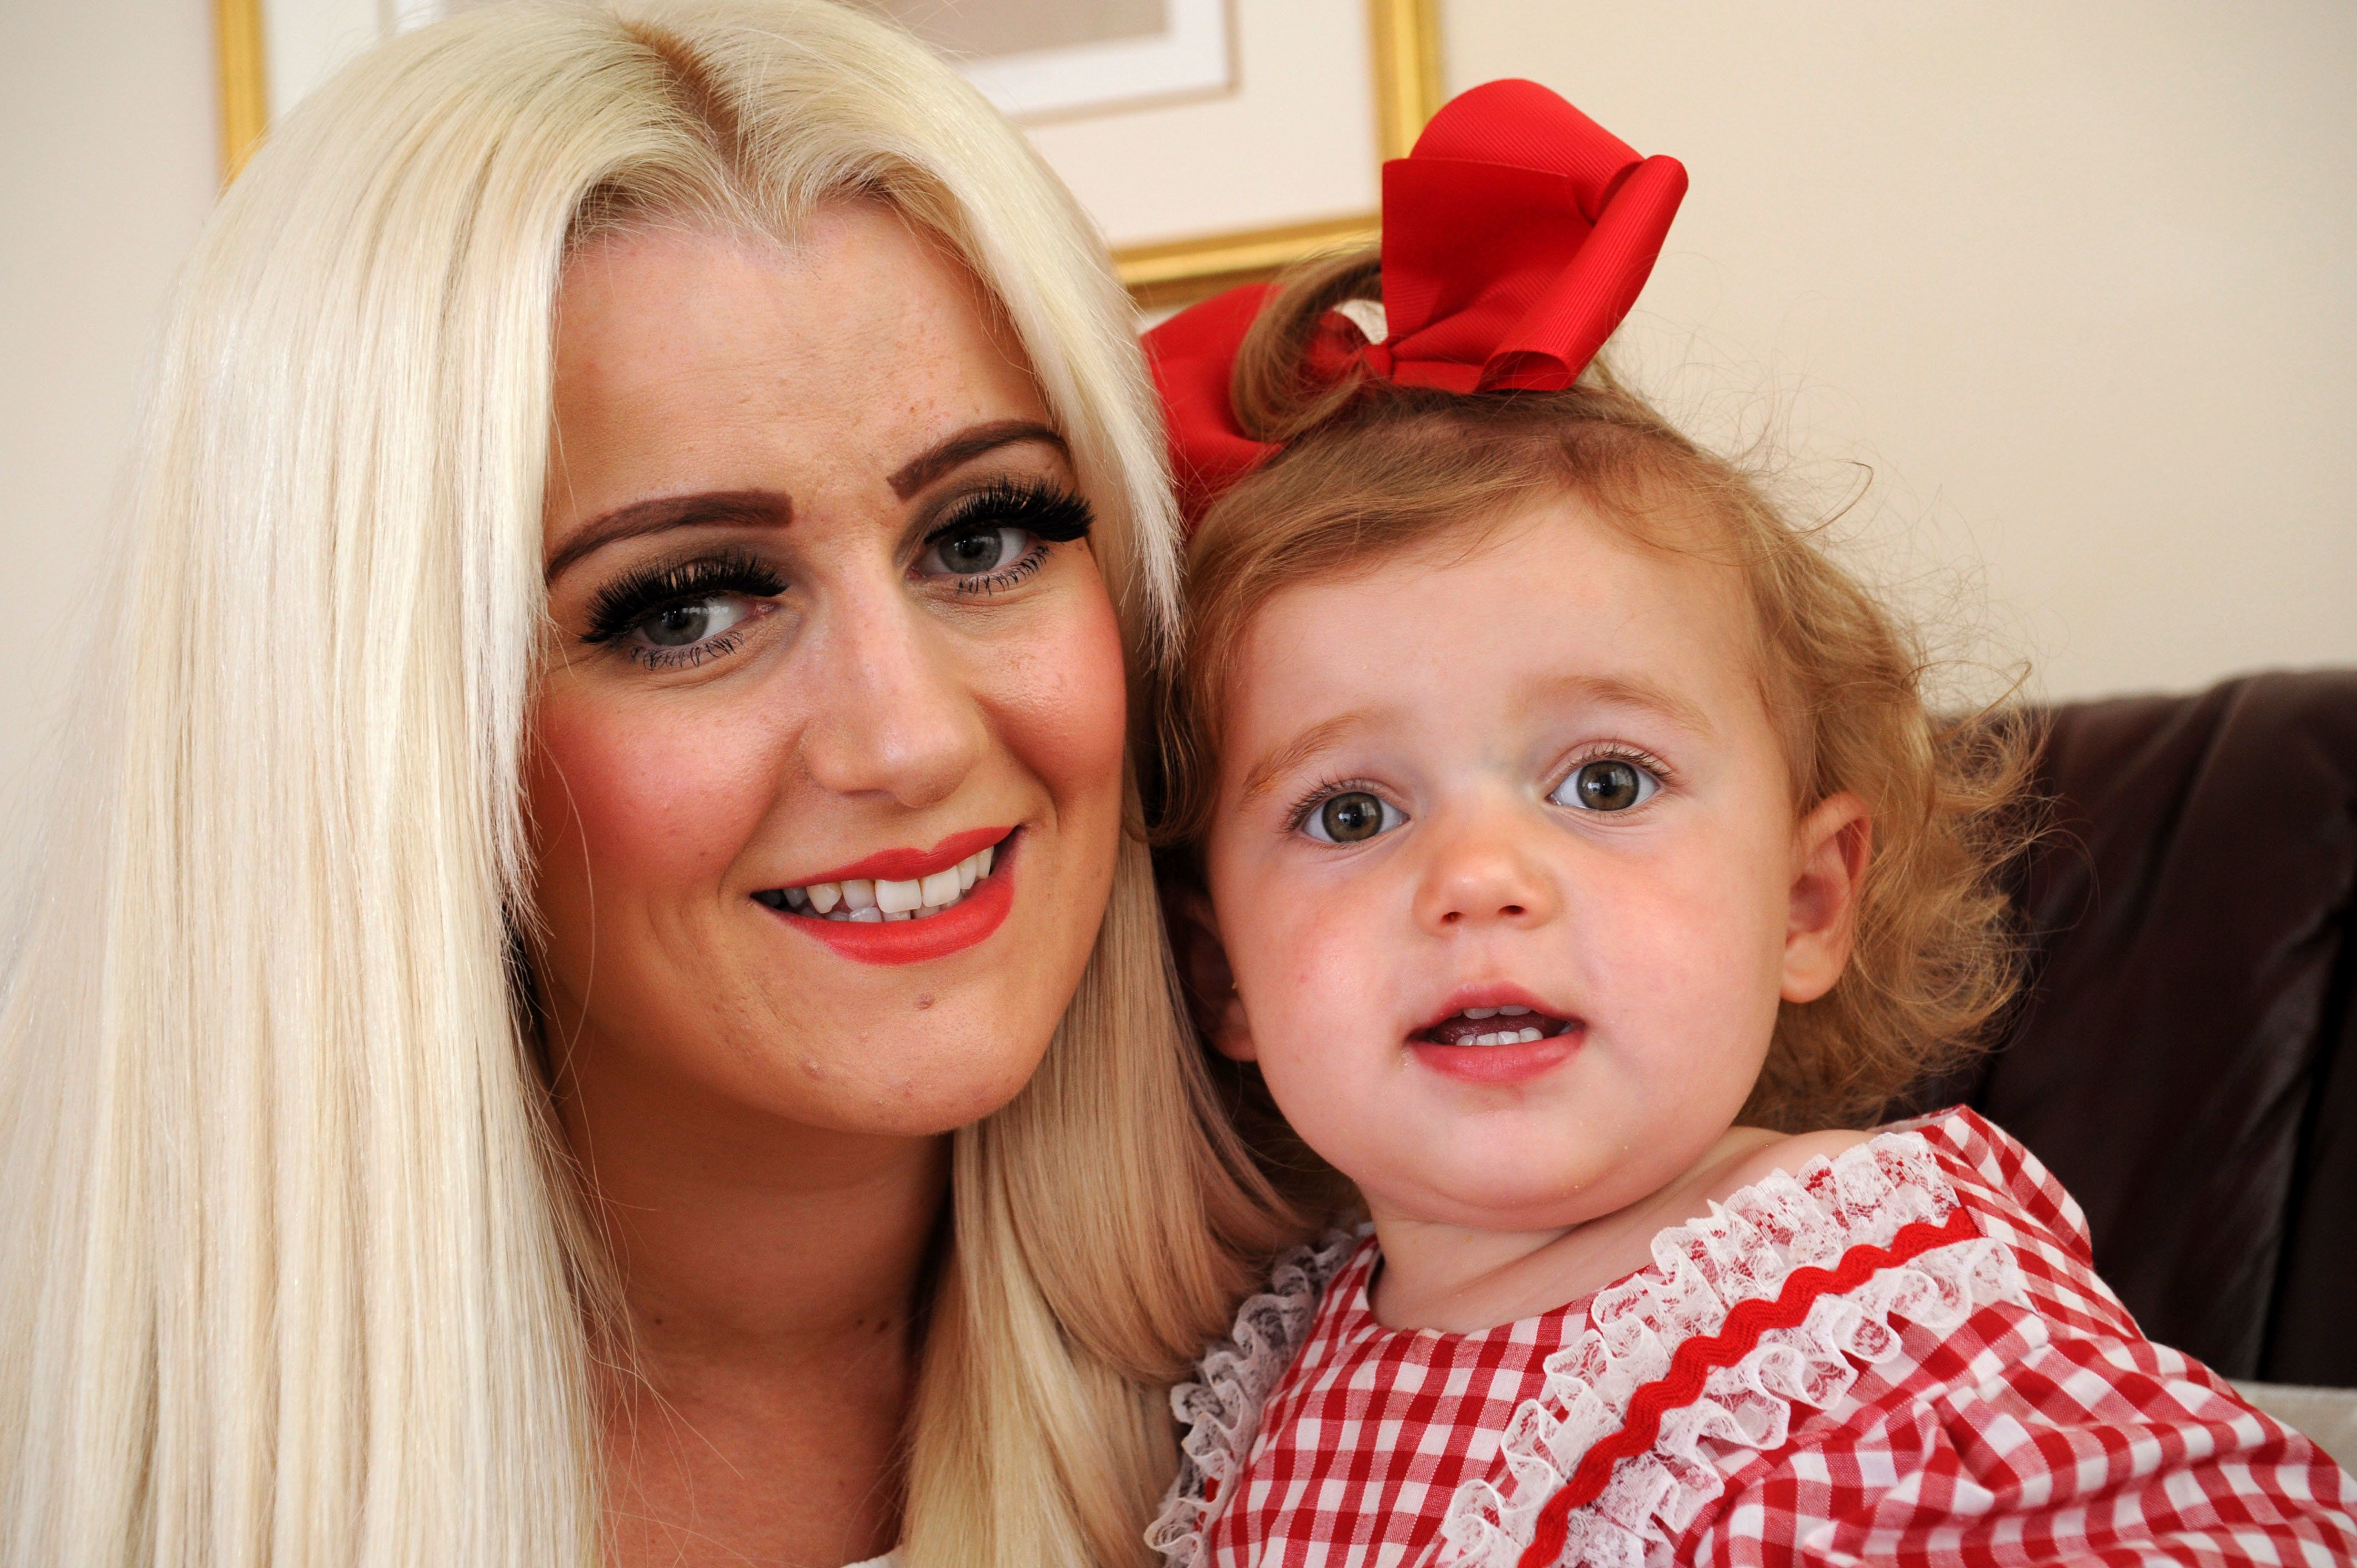 Leigh-Anne Challinor and her daughter